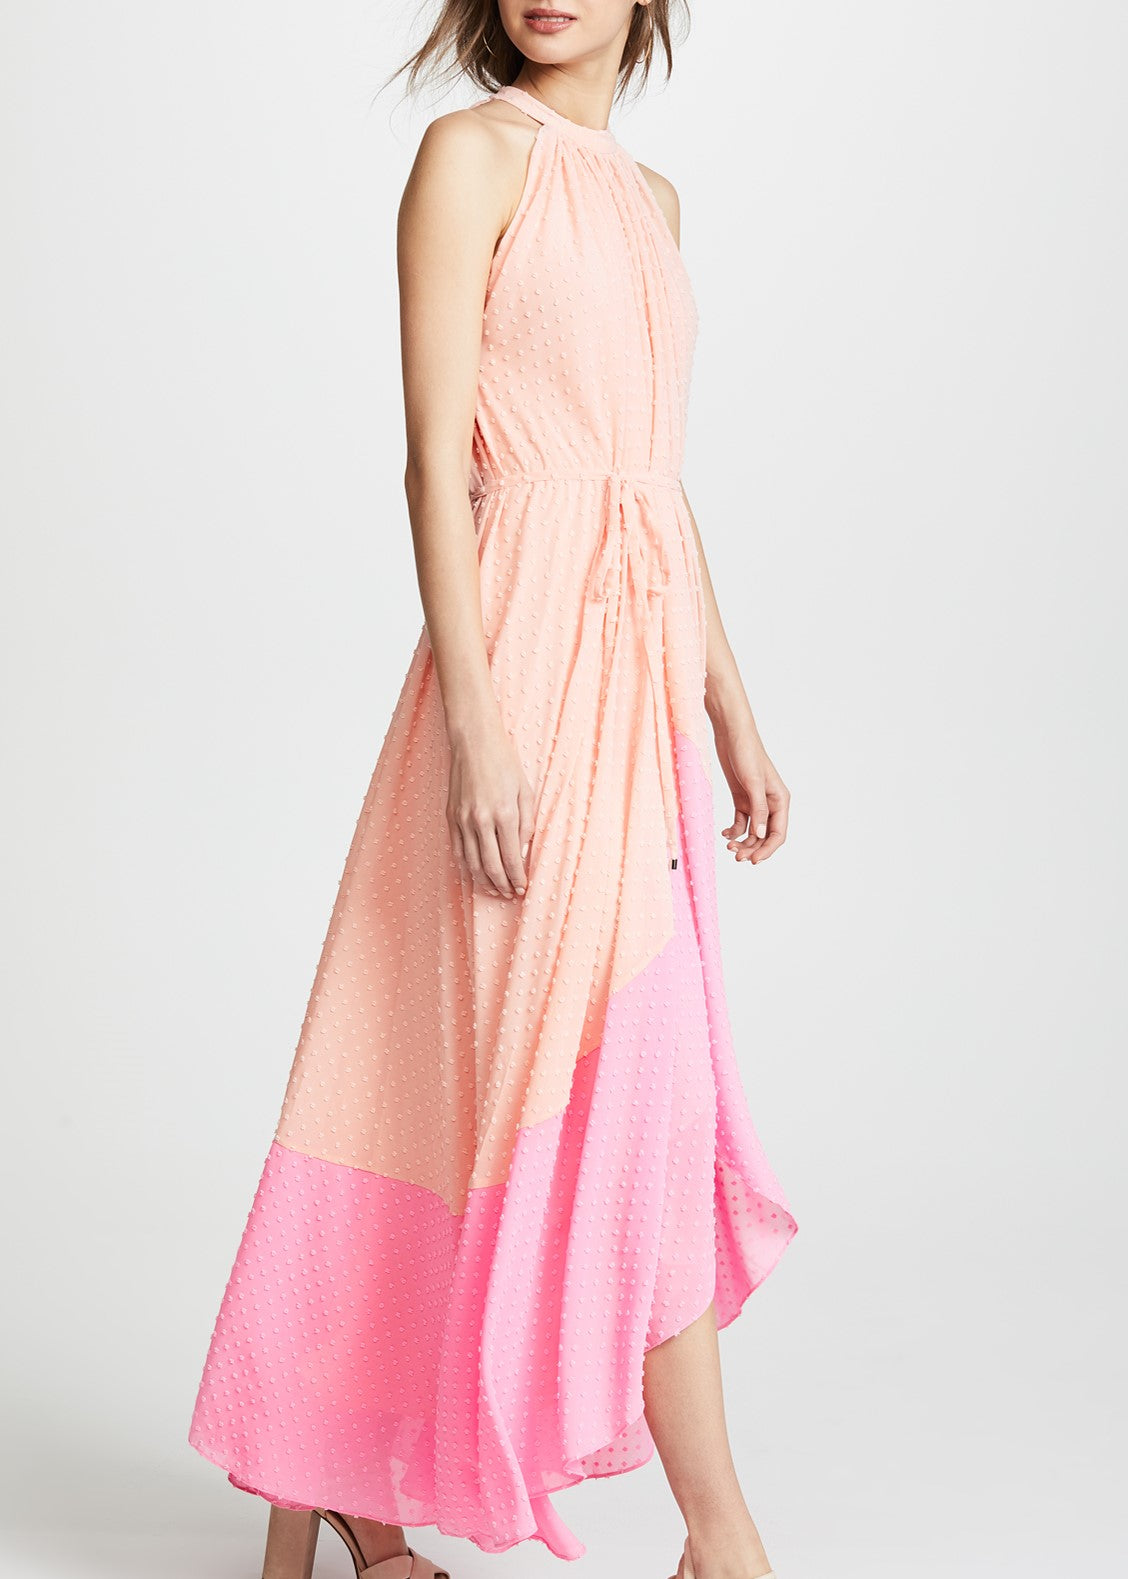 Saloni Iris dress in light peach mid pink